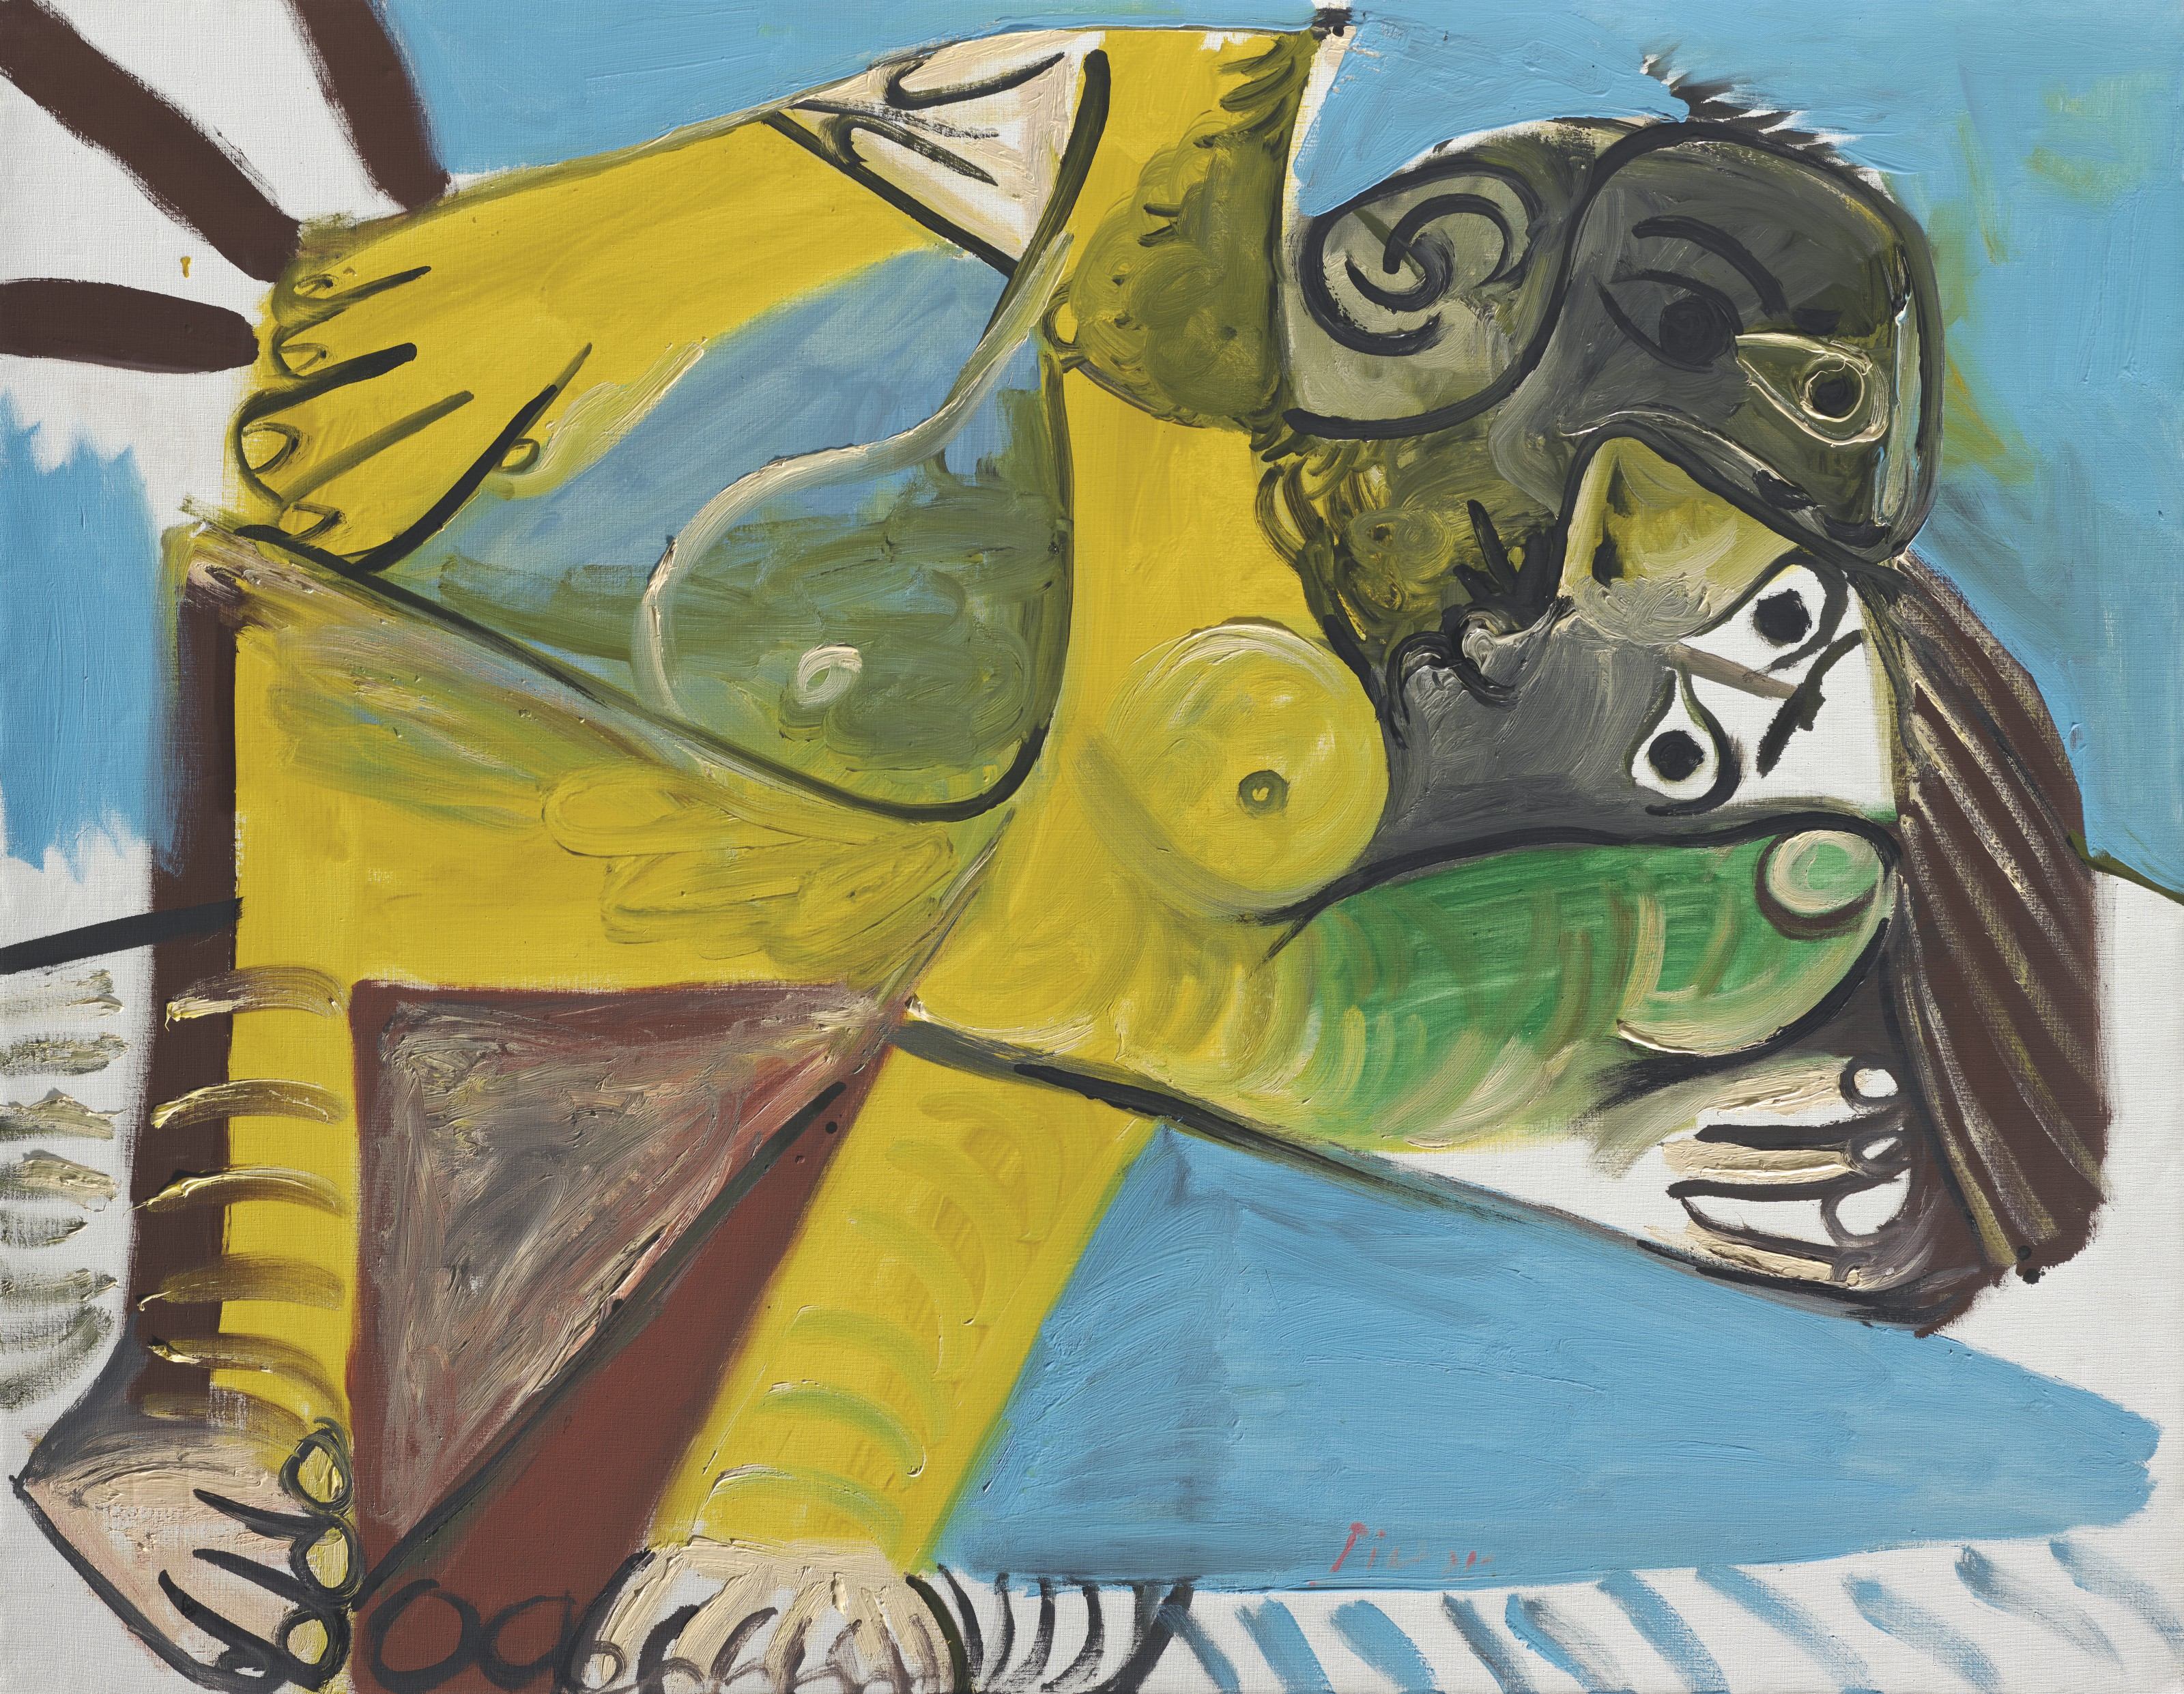 Pablo Picasso (1881-1973), Létreinte, 1969. Oil on canvas. 44¾ x 57½ in (113.6 x 146 cm). Sold for £14,697,000 on 30 June 2021 at Christie's in London